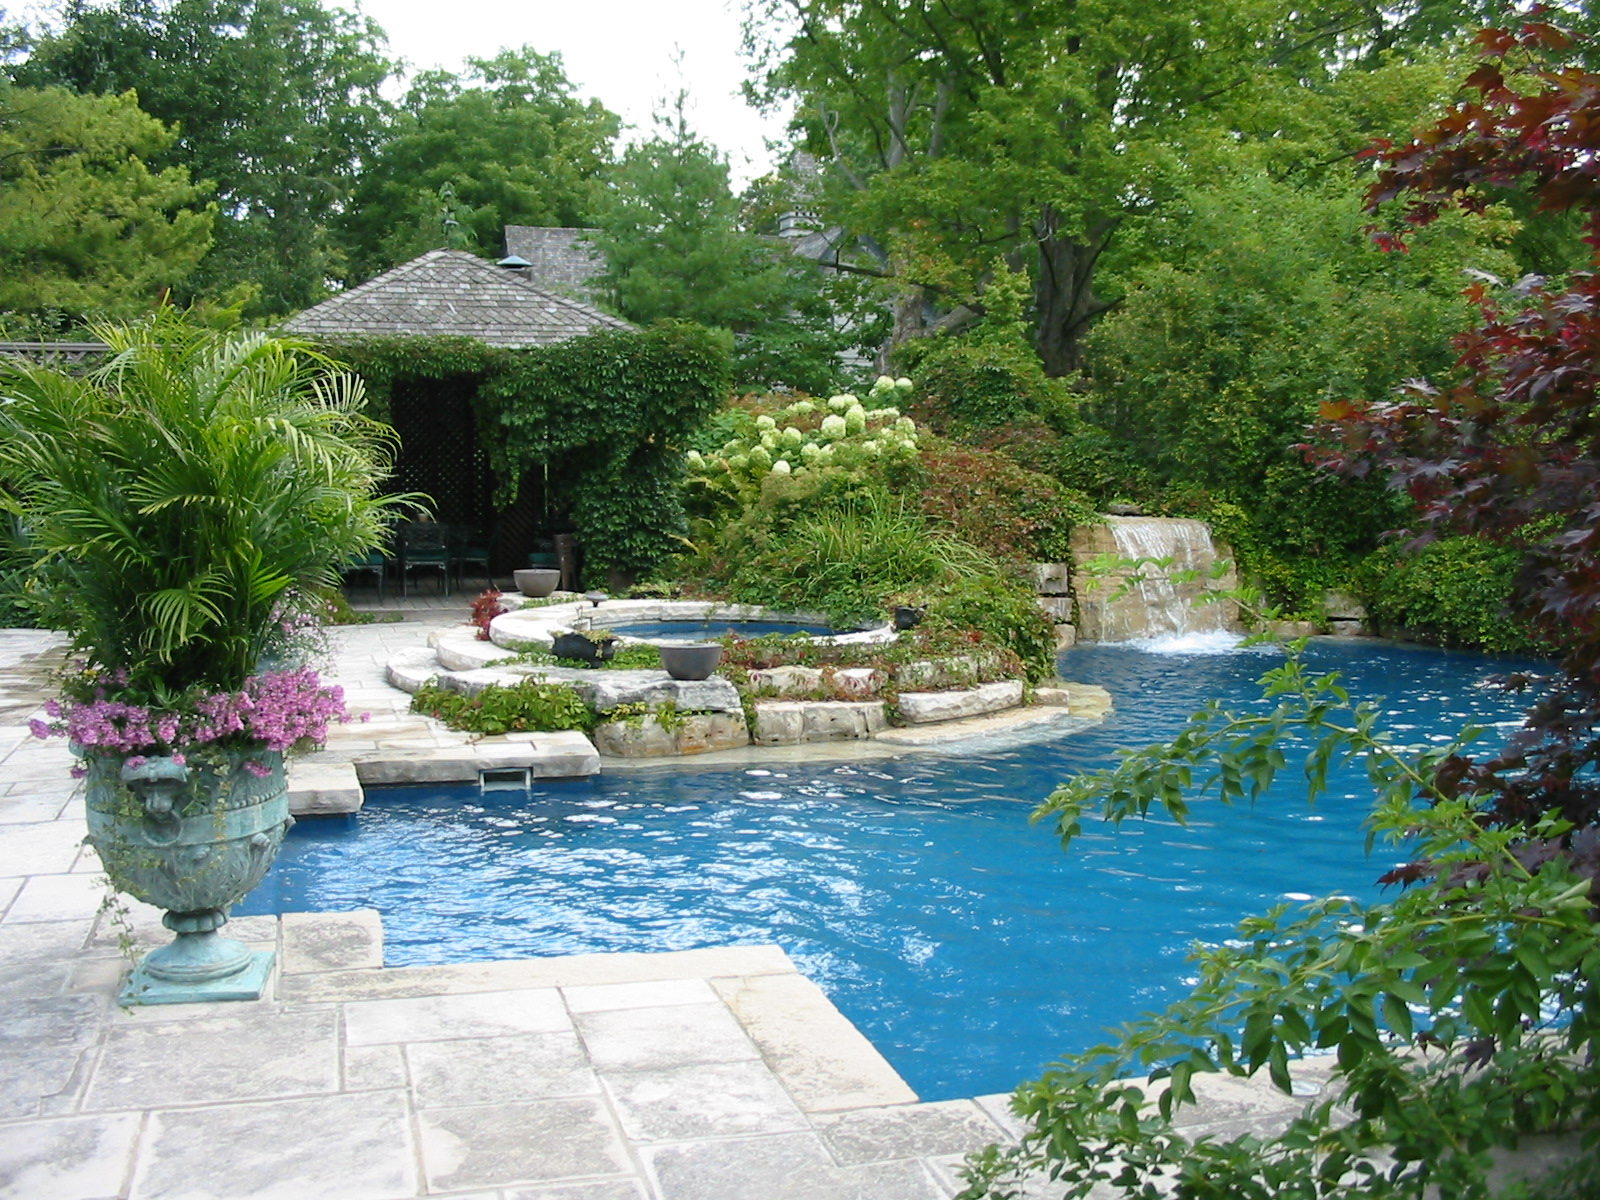 Swimming pool with curved stone steps